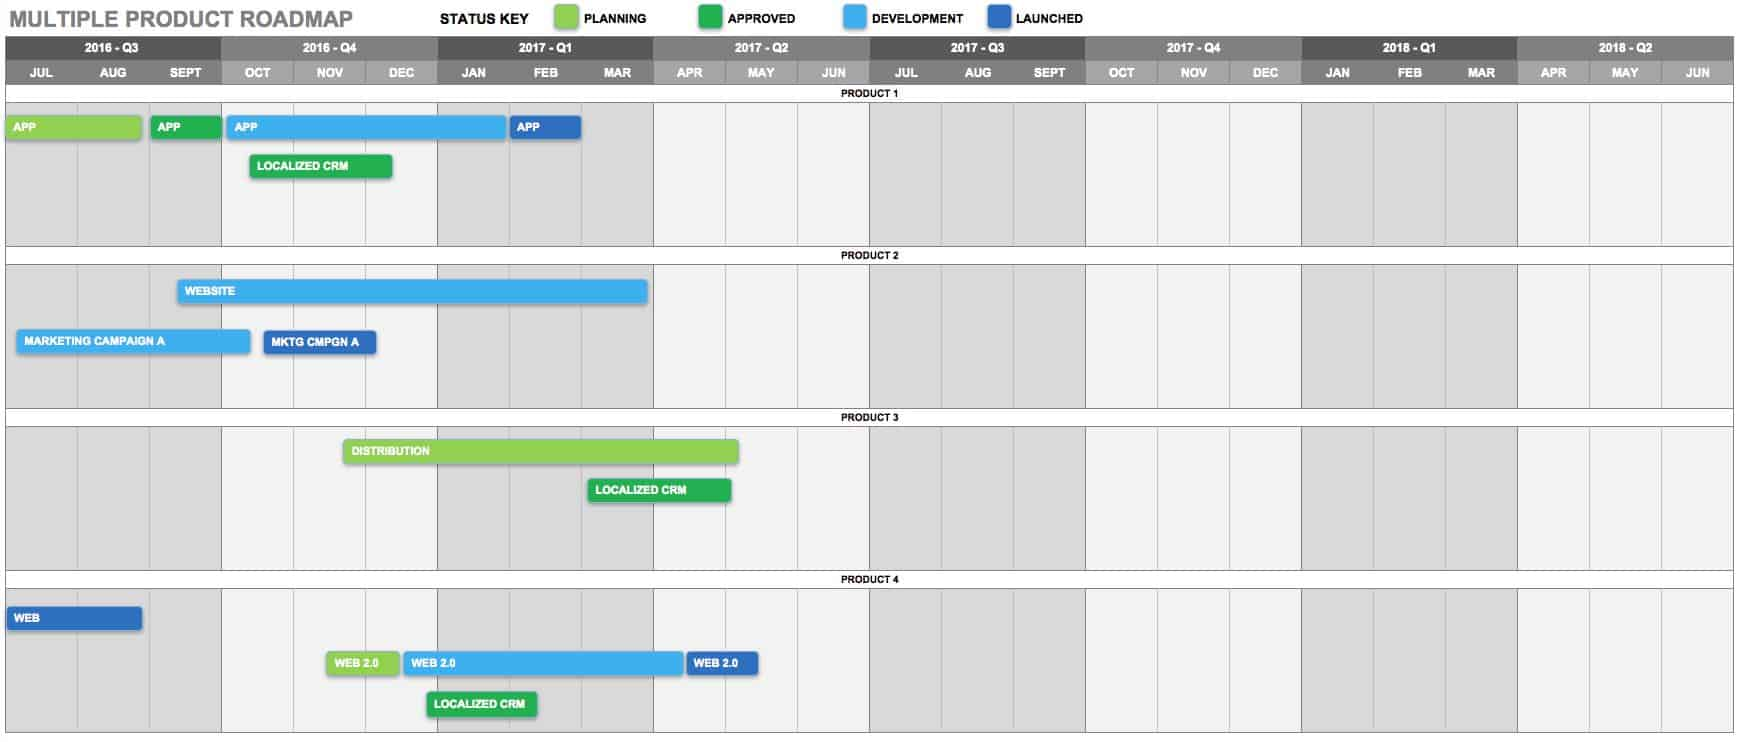 Multiple Product Roadmap Template